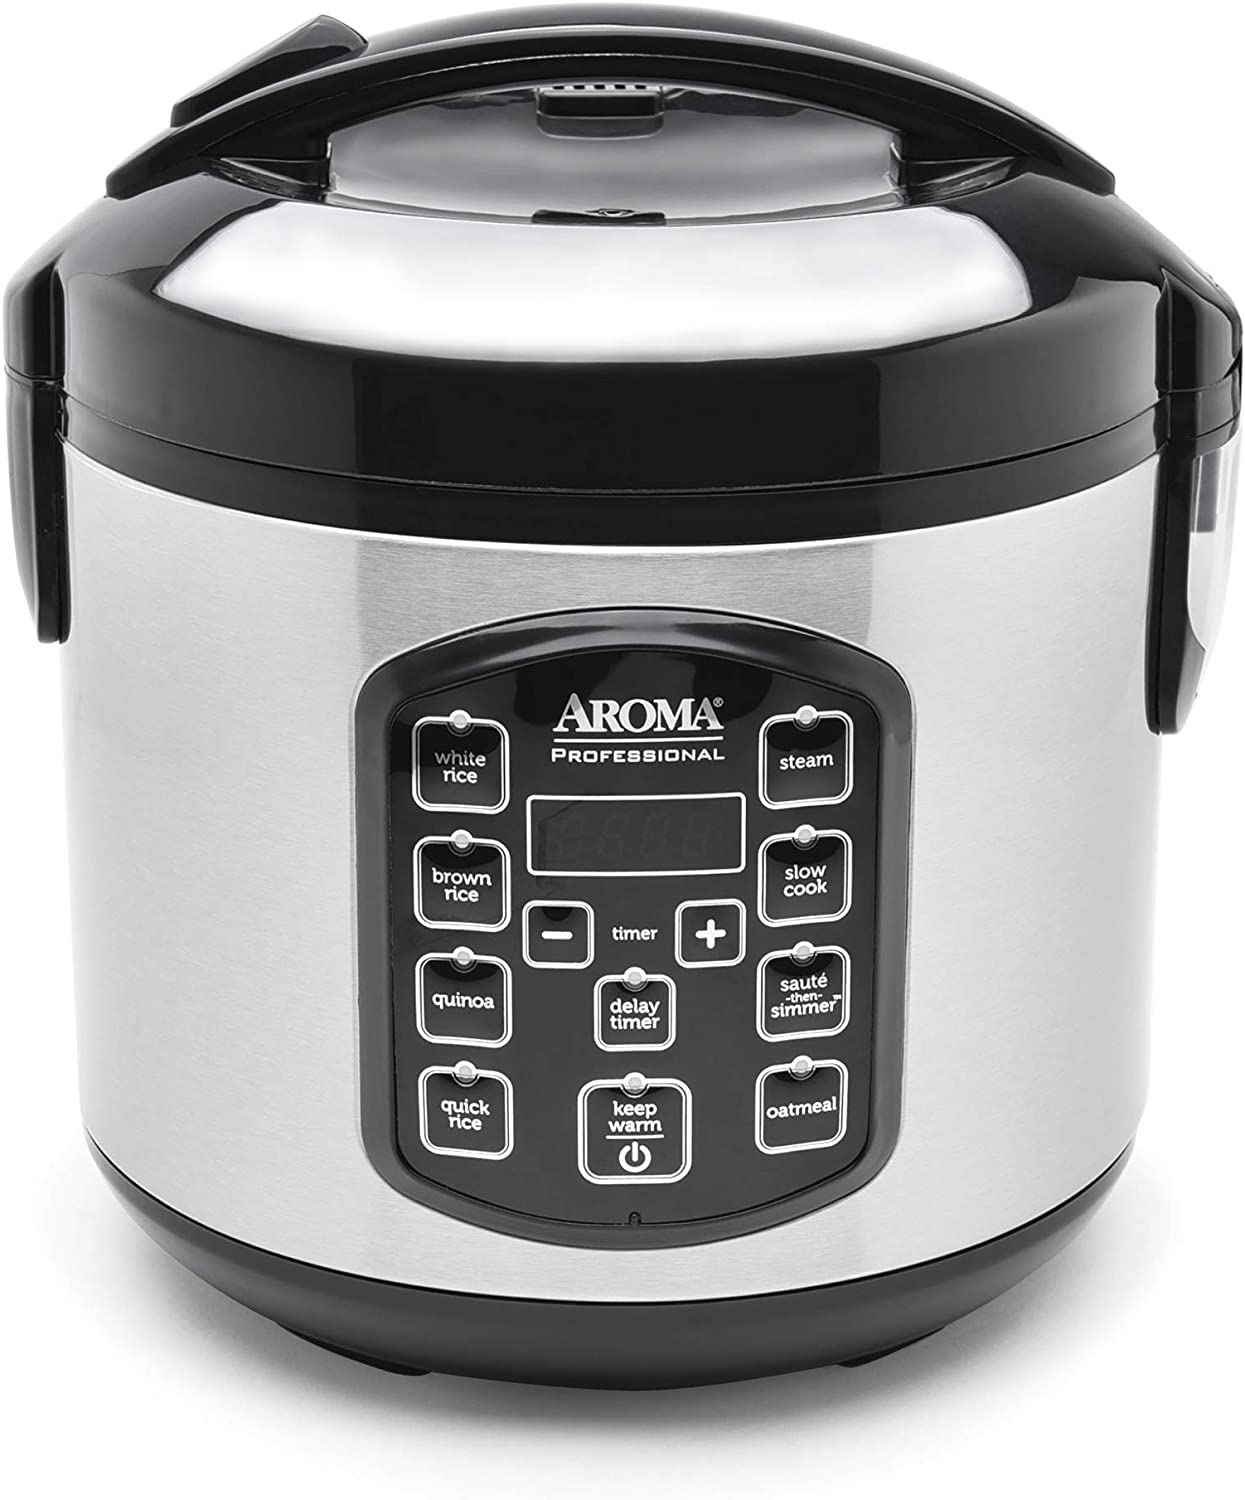 Aroma Housewares ARC-954SBD Sales Rice Cooker Chicago Mall 4-Cup Uncooked 2.5 Quar